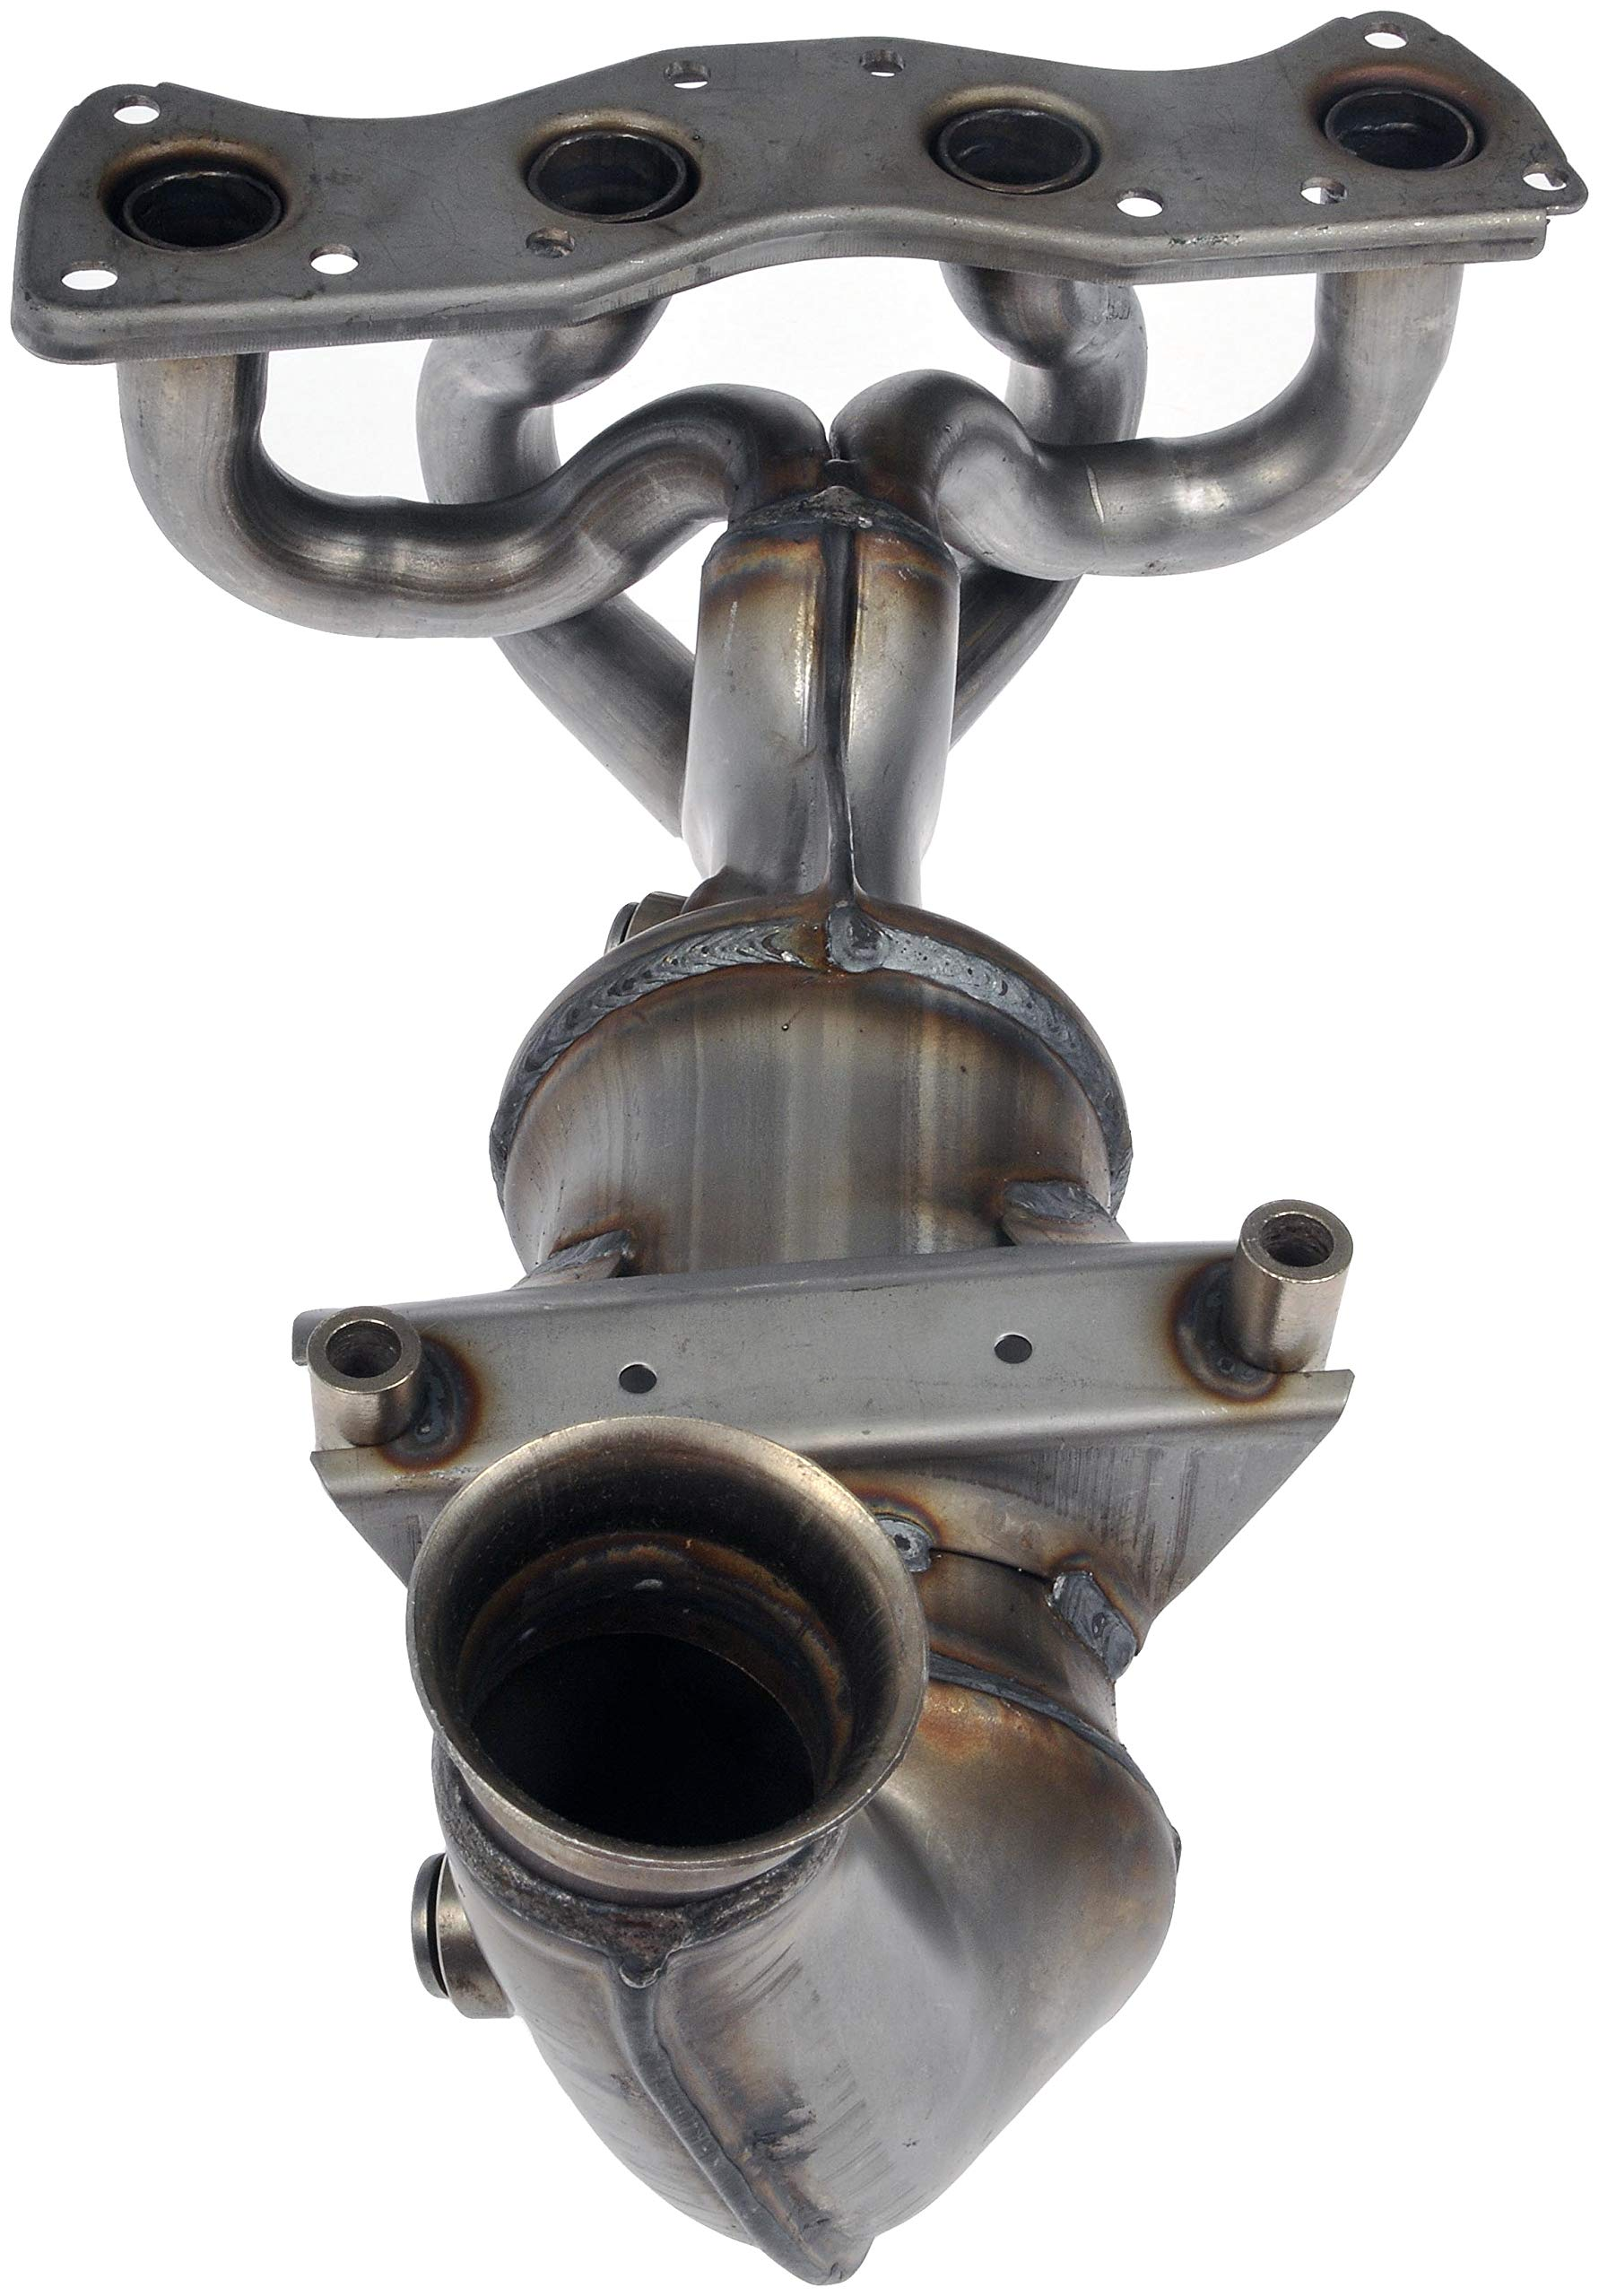 Dorman 674-748 Catalytic Converter with Integrated Exhaust Manifold for Select Mini Models (Non-CARB Compliant)